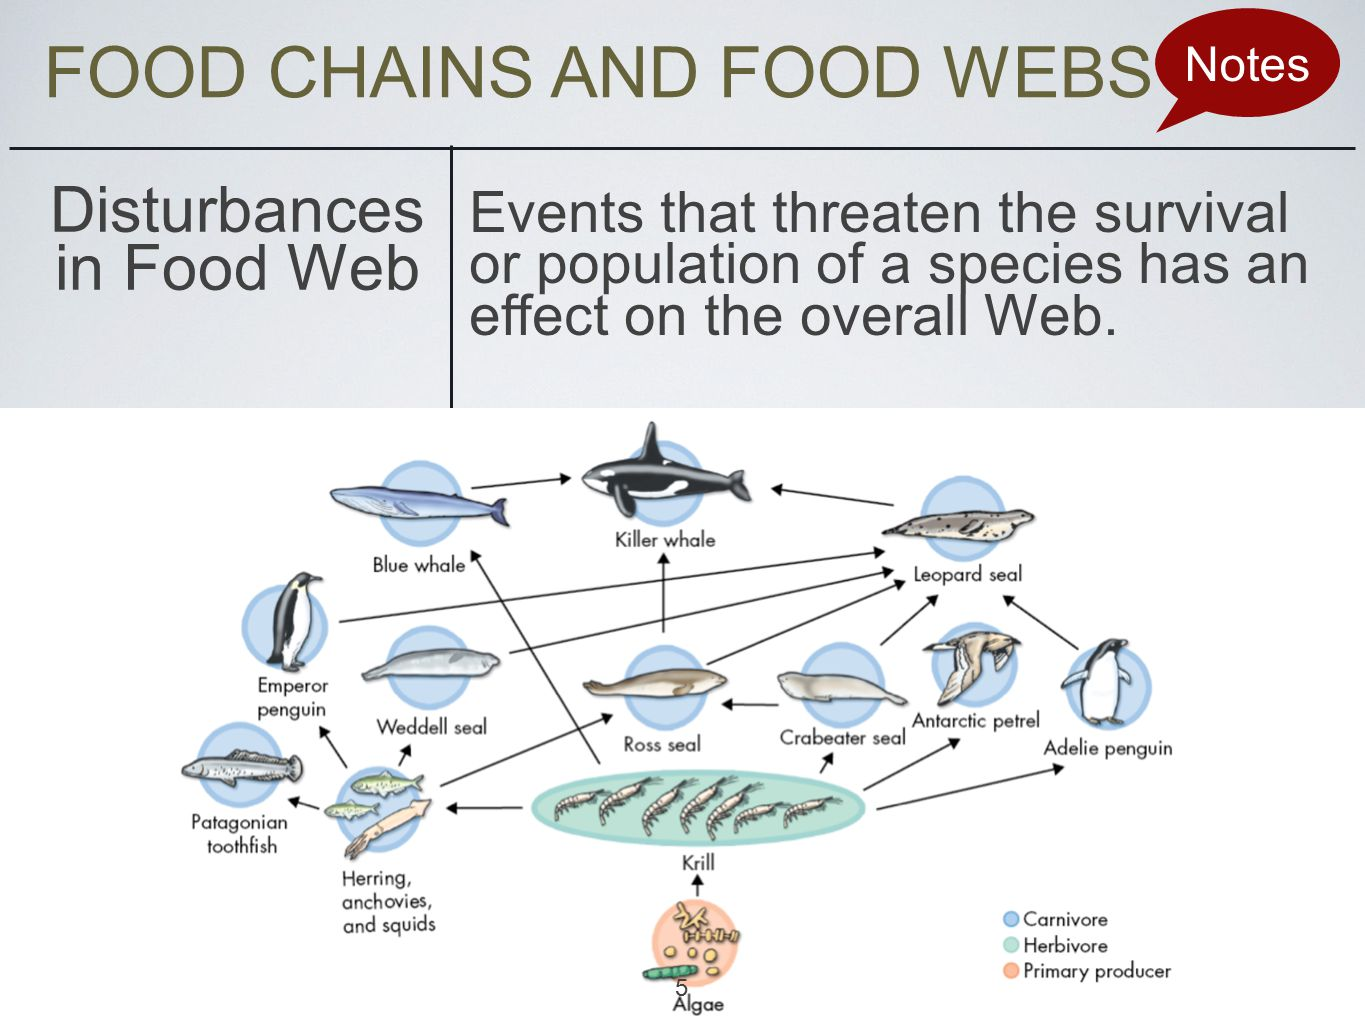 FOOD CHAINS AND FOOD WEBS Notes Disturbances in Food Web Events that threaten the survival or population of a species has an effect on the overall Web.